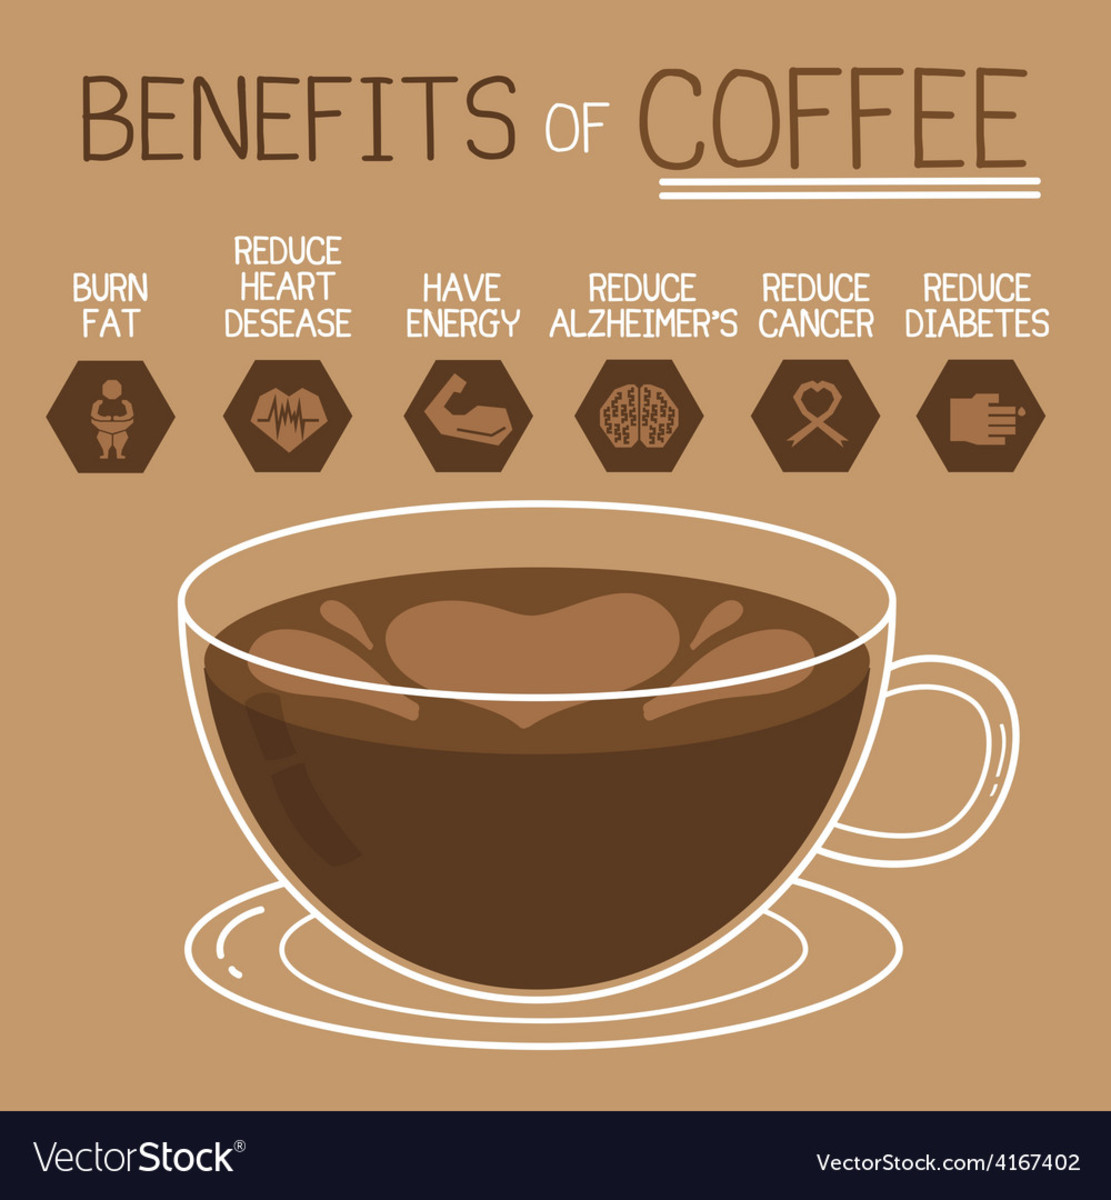 Coffee Can Help You Out